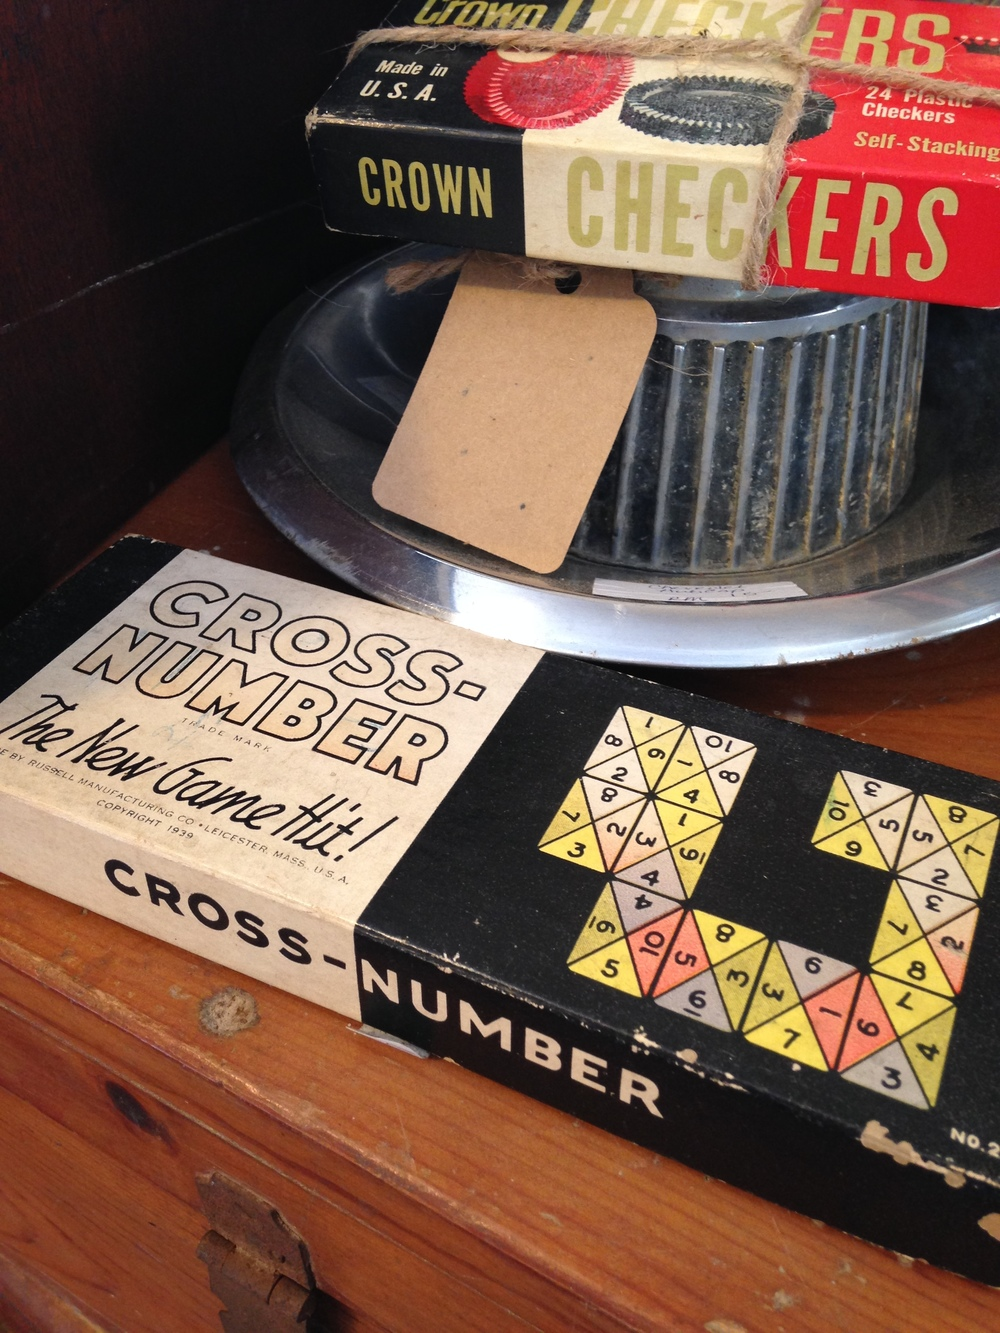 Antique shops are chock full of fun lettering, color schemes, etc.